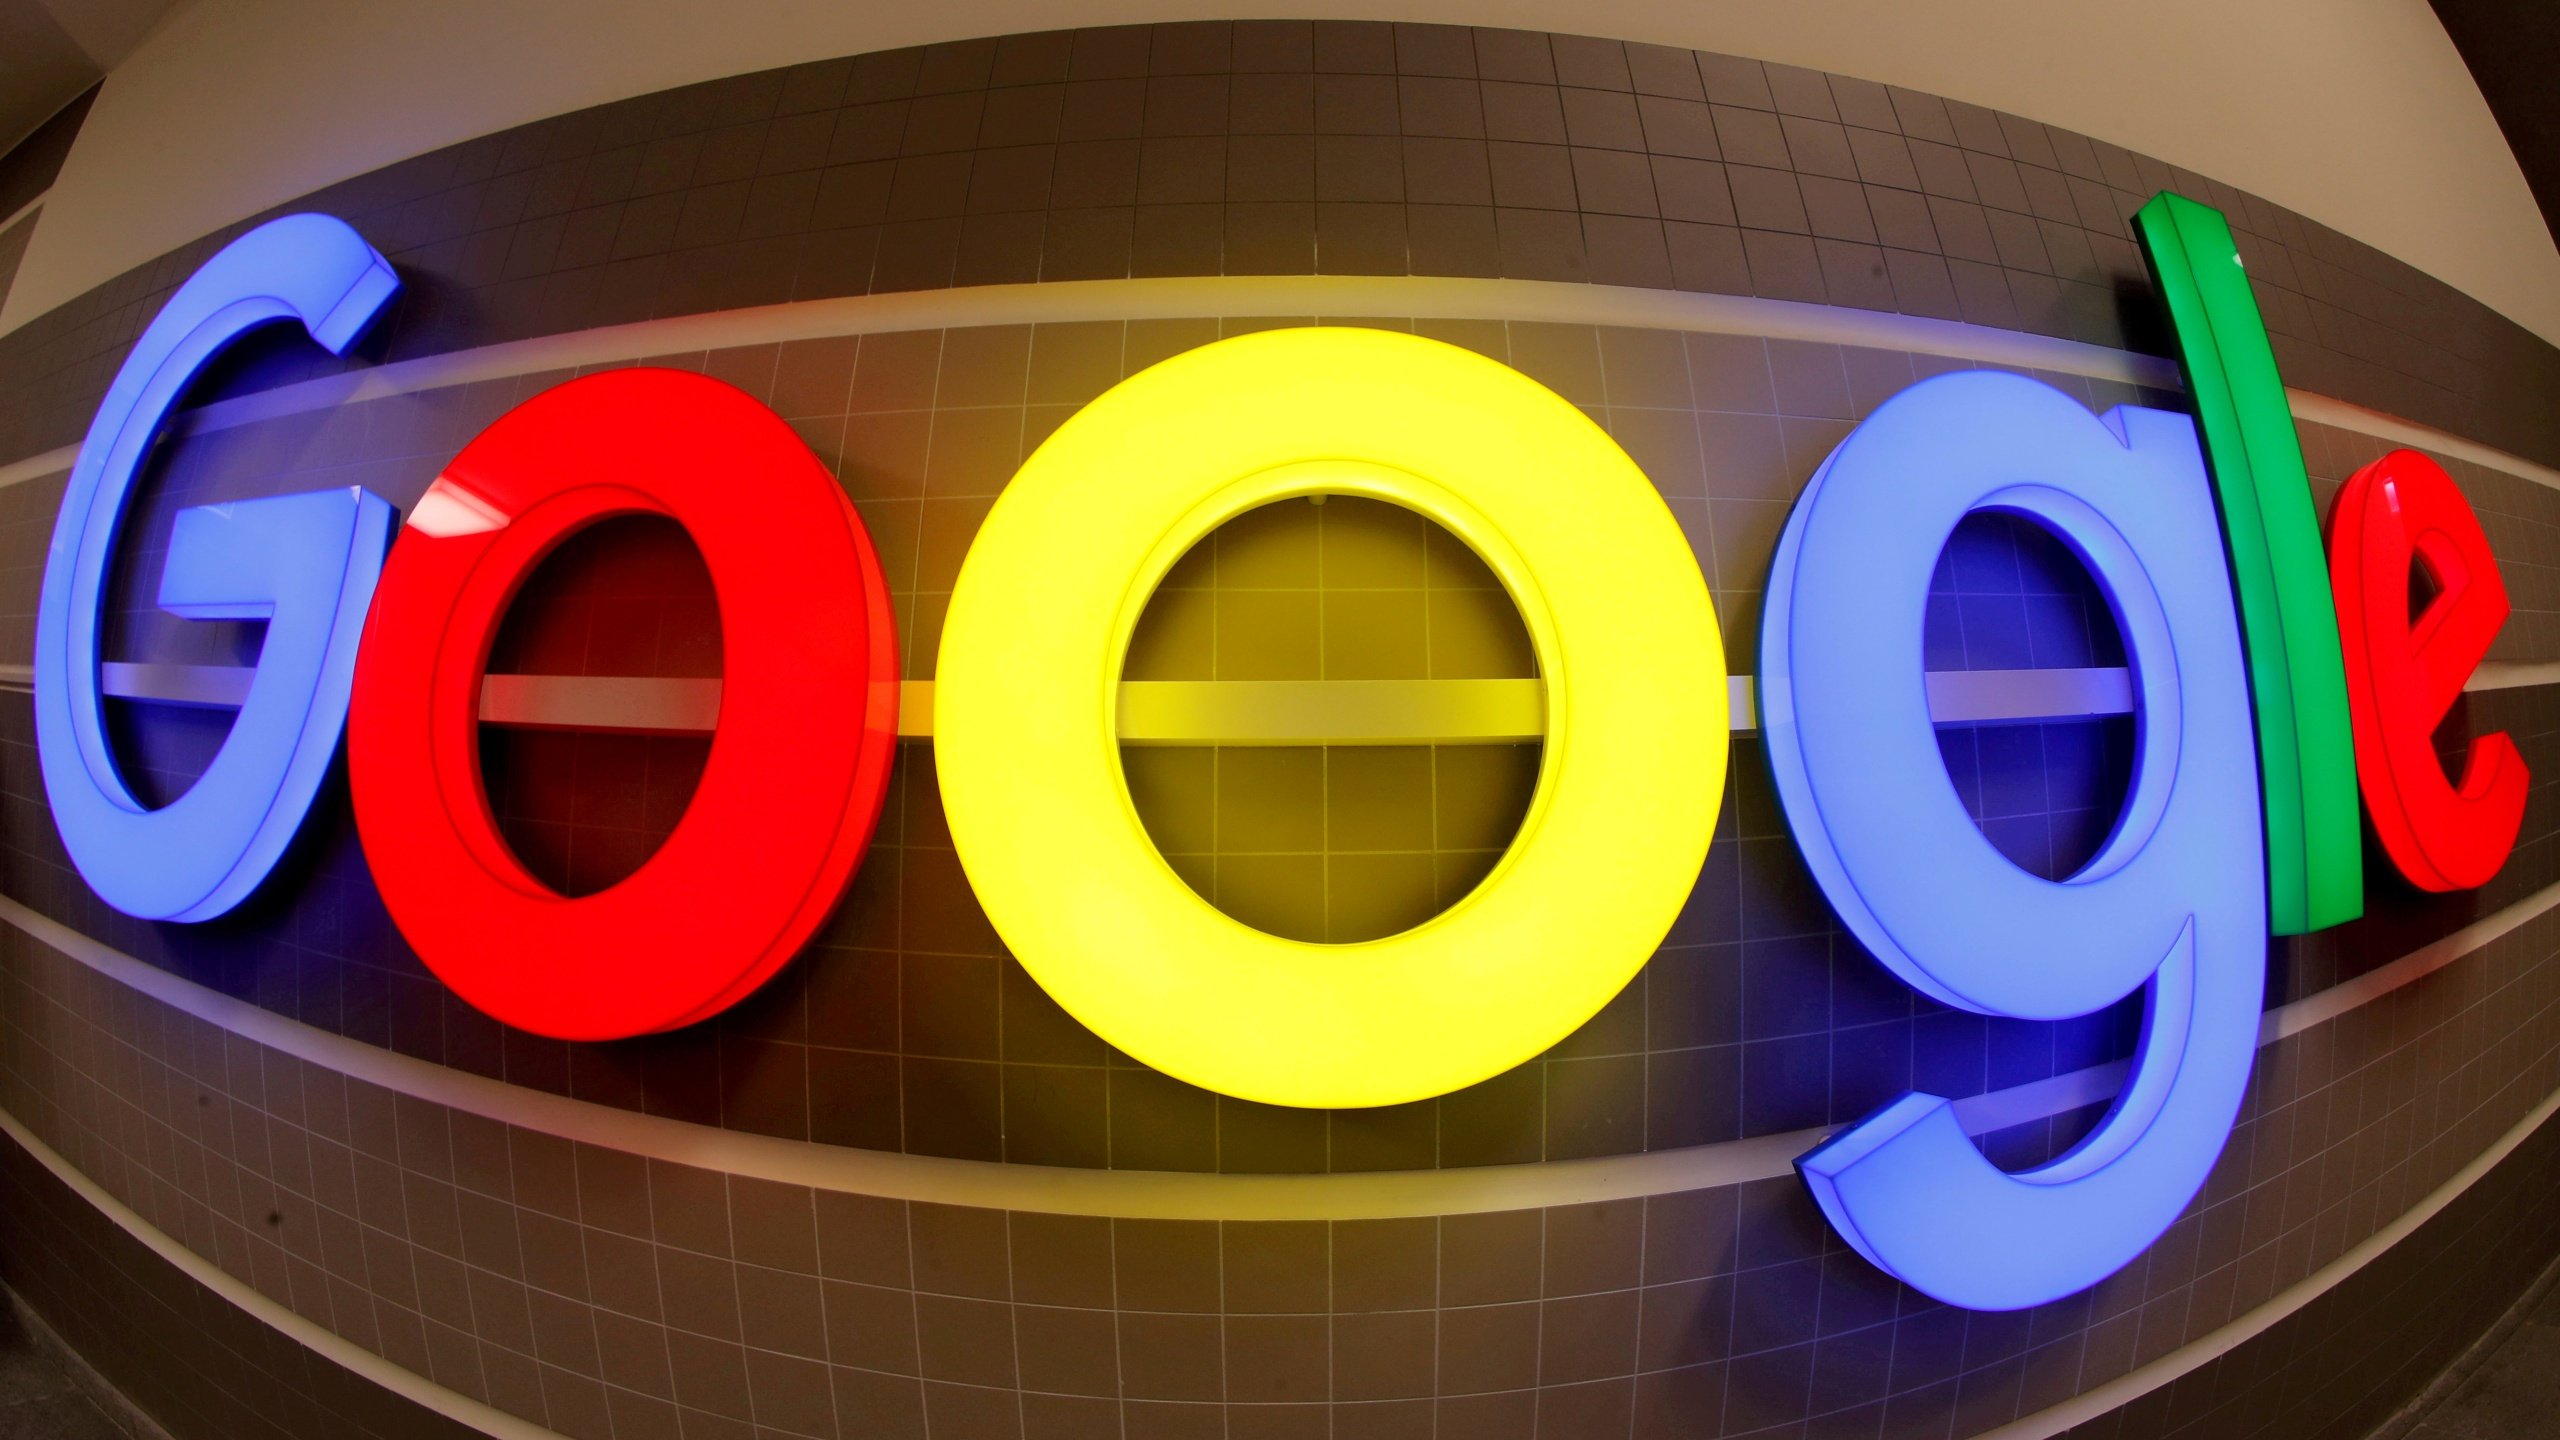 Picture of Google sign